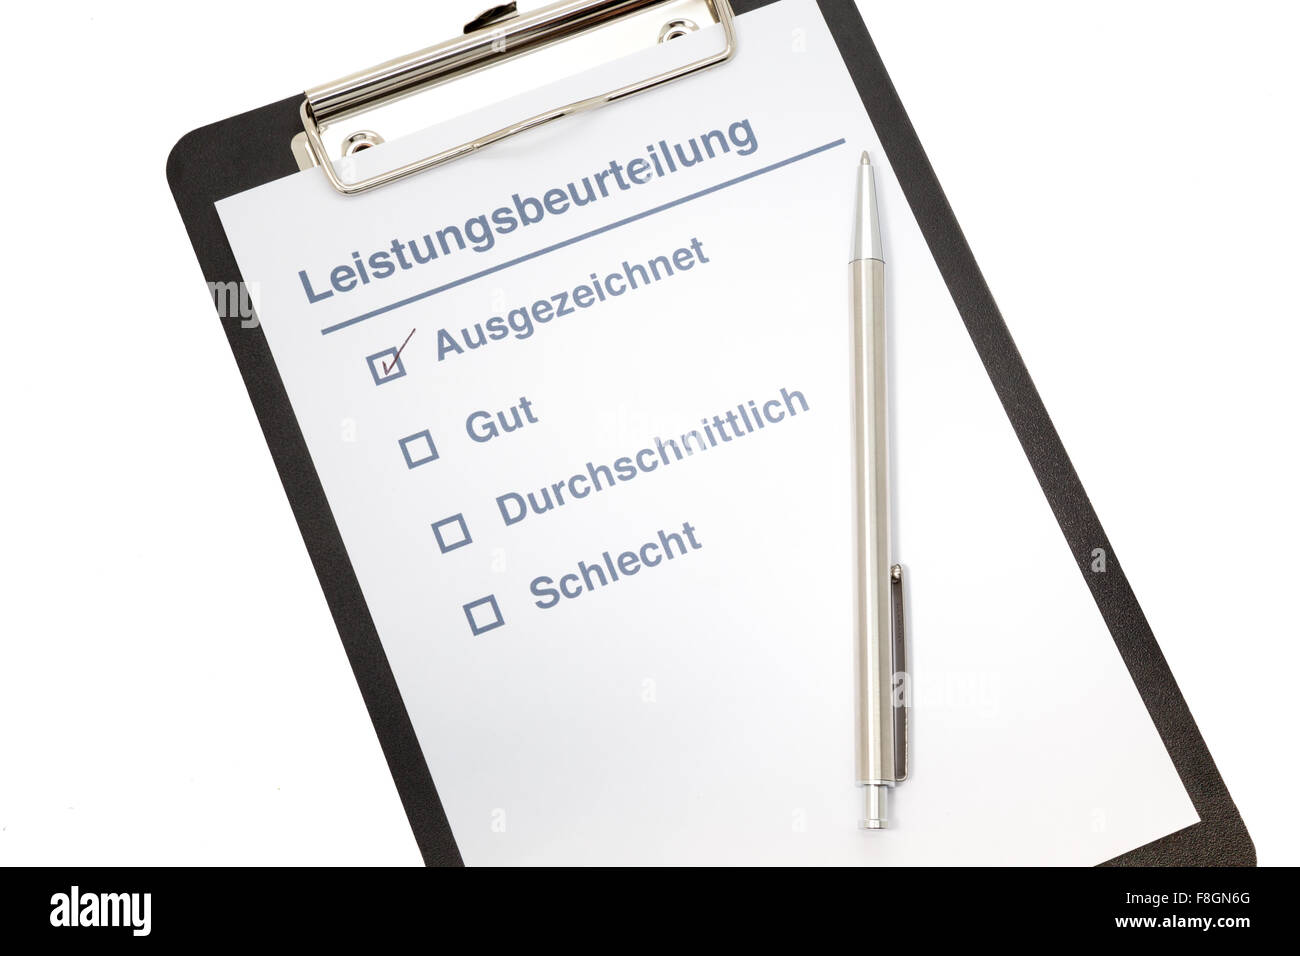 Performance evaluation paper with pen and tick marks on clipboard in german - Stock Image